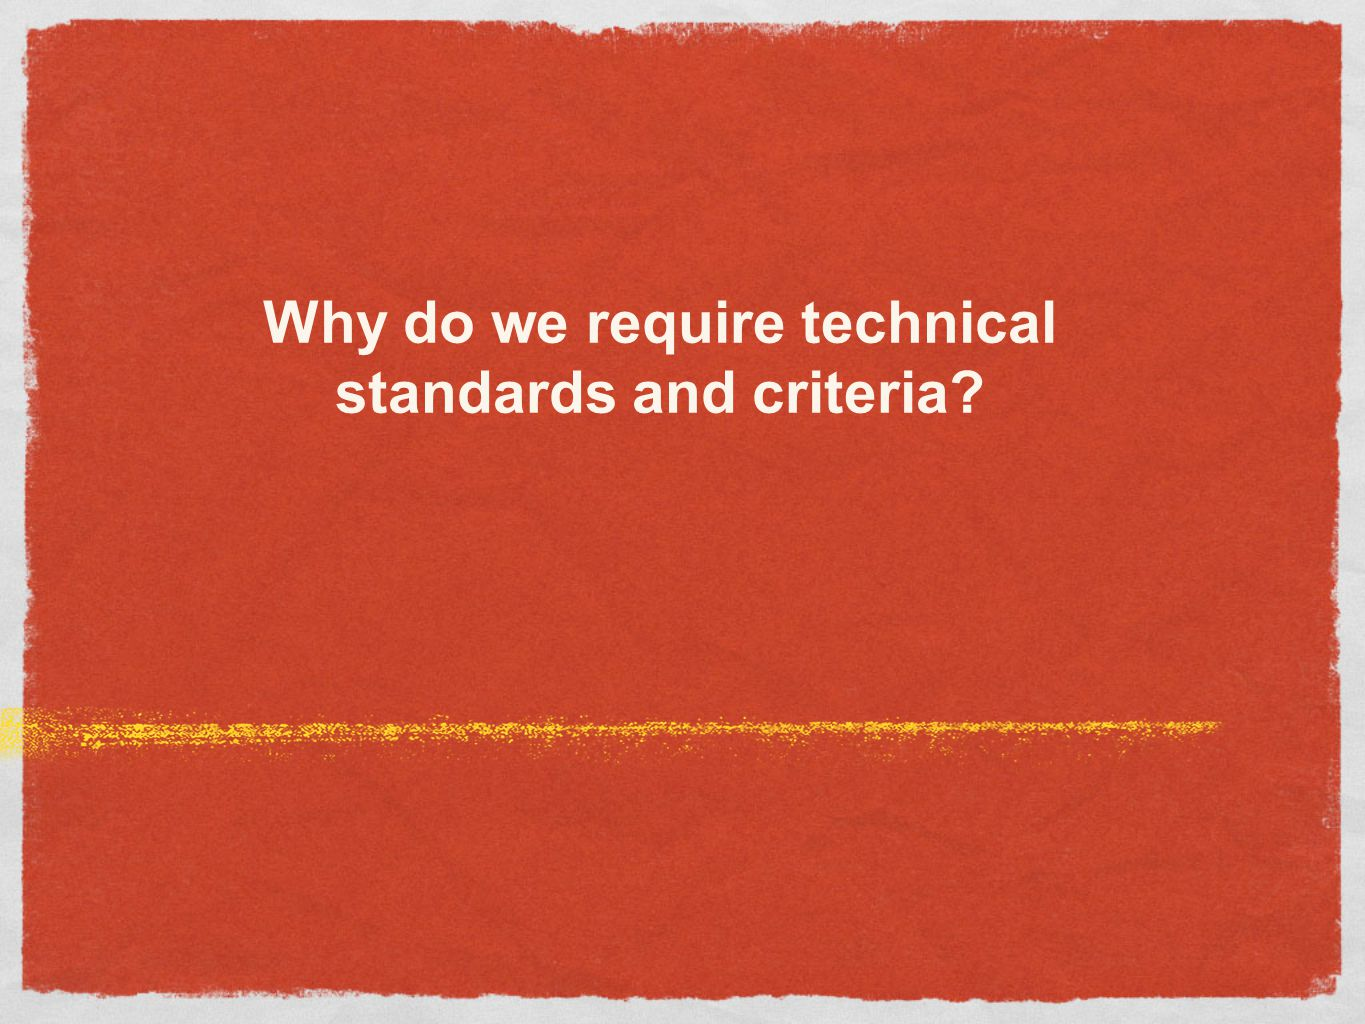 Why do we require technical standards and criteria